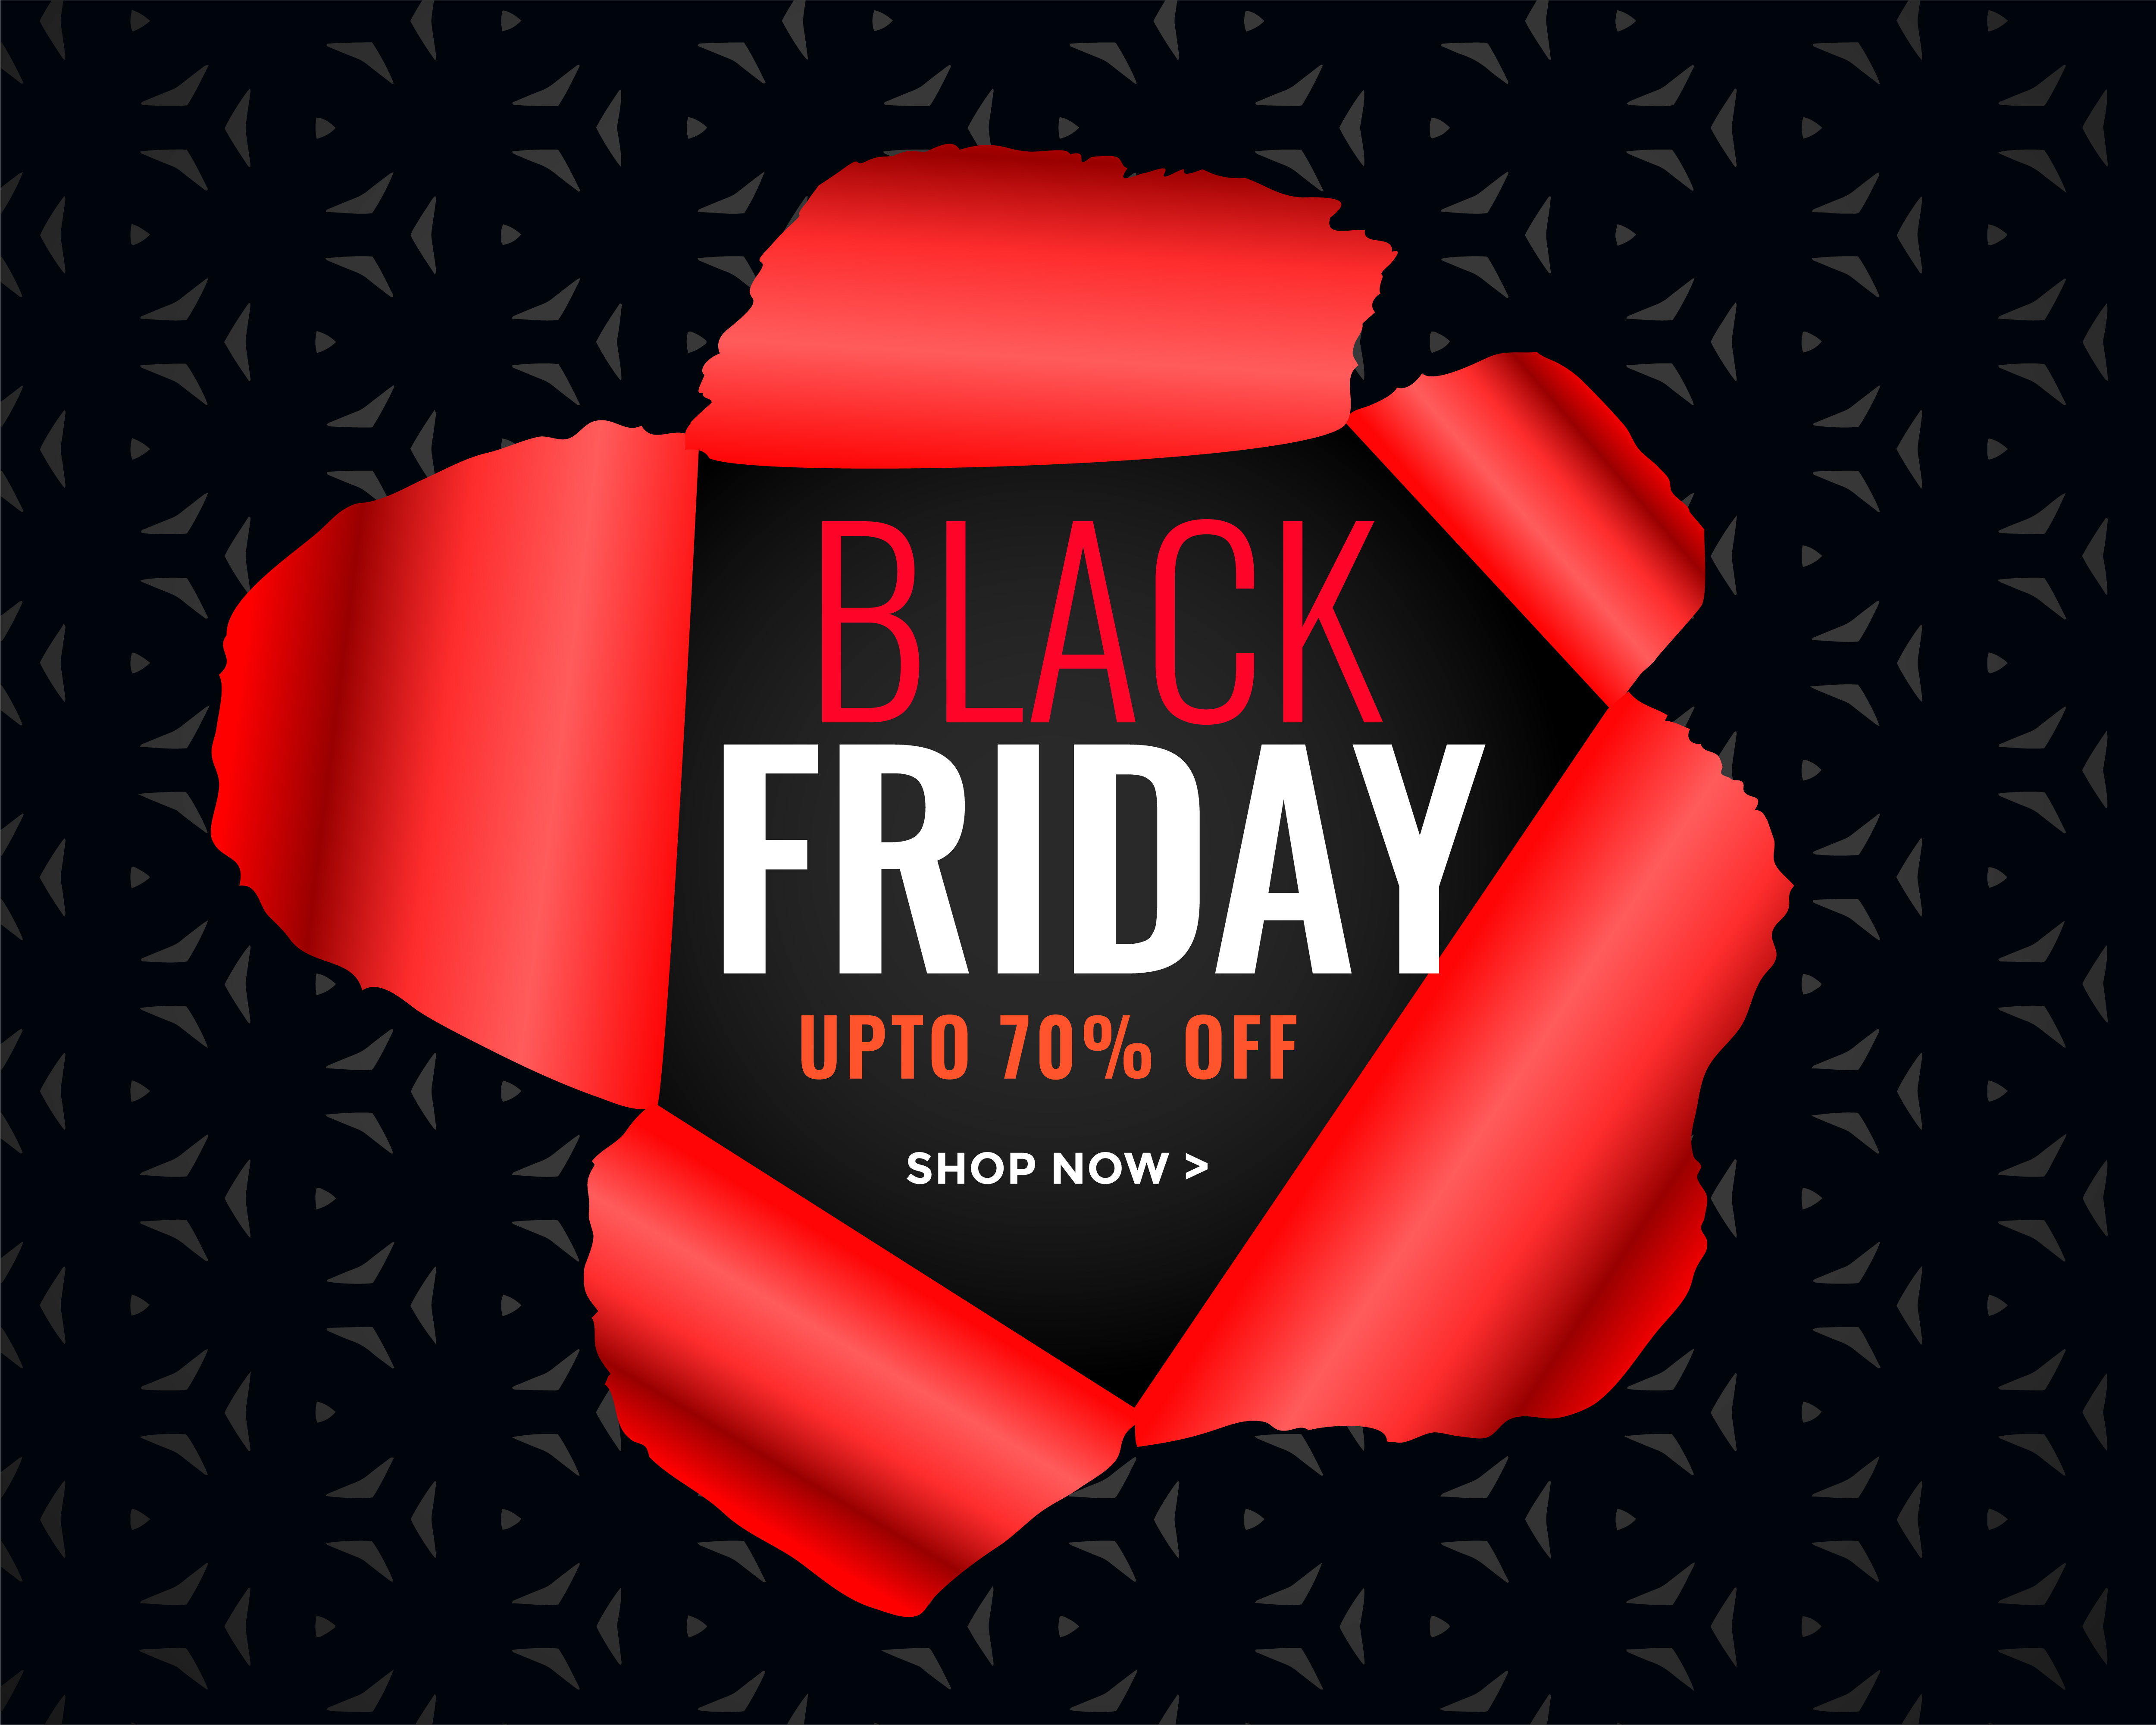 Black Friday ? Black Friday Sale Poster In Torn Paper Style - Download ...